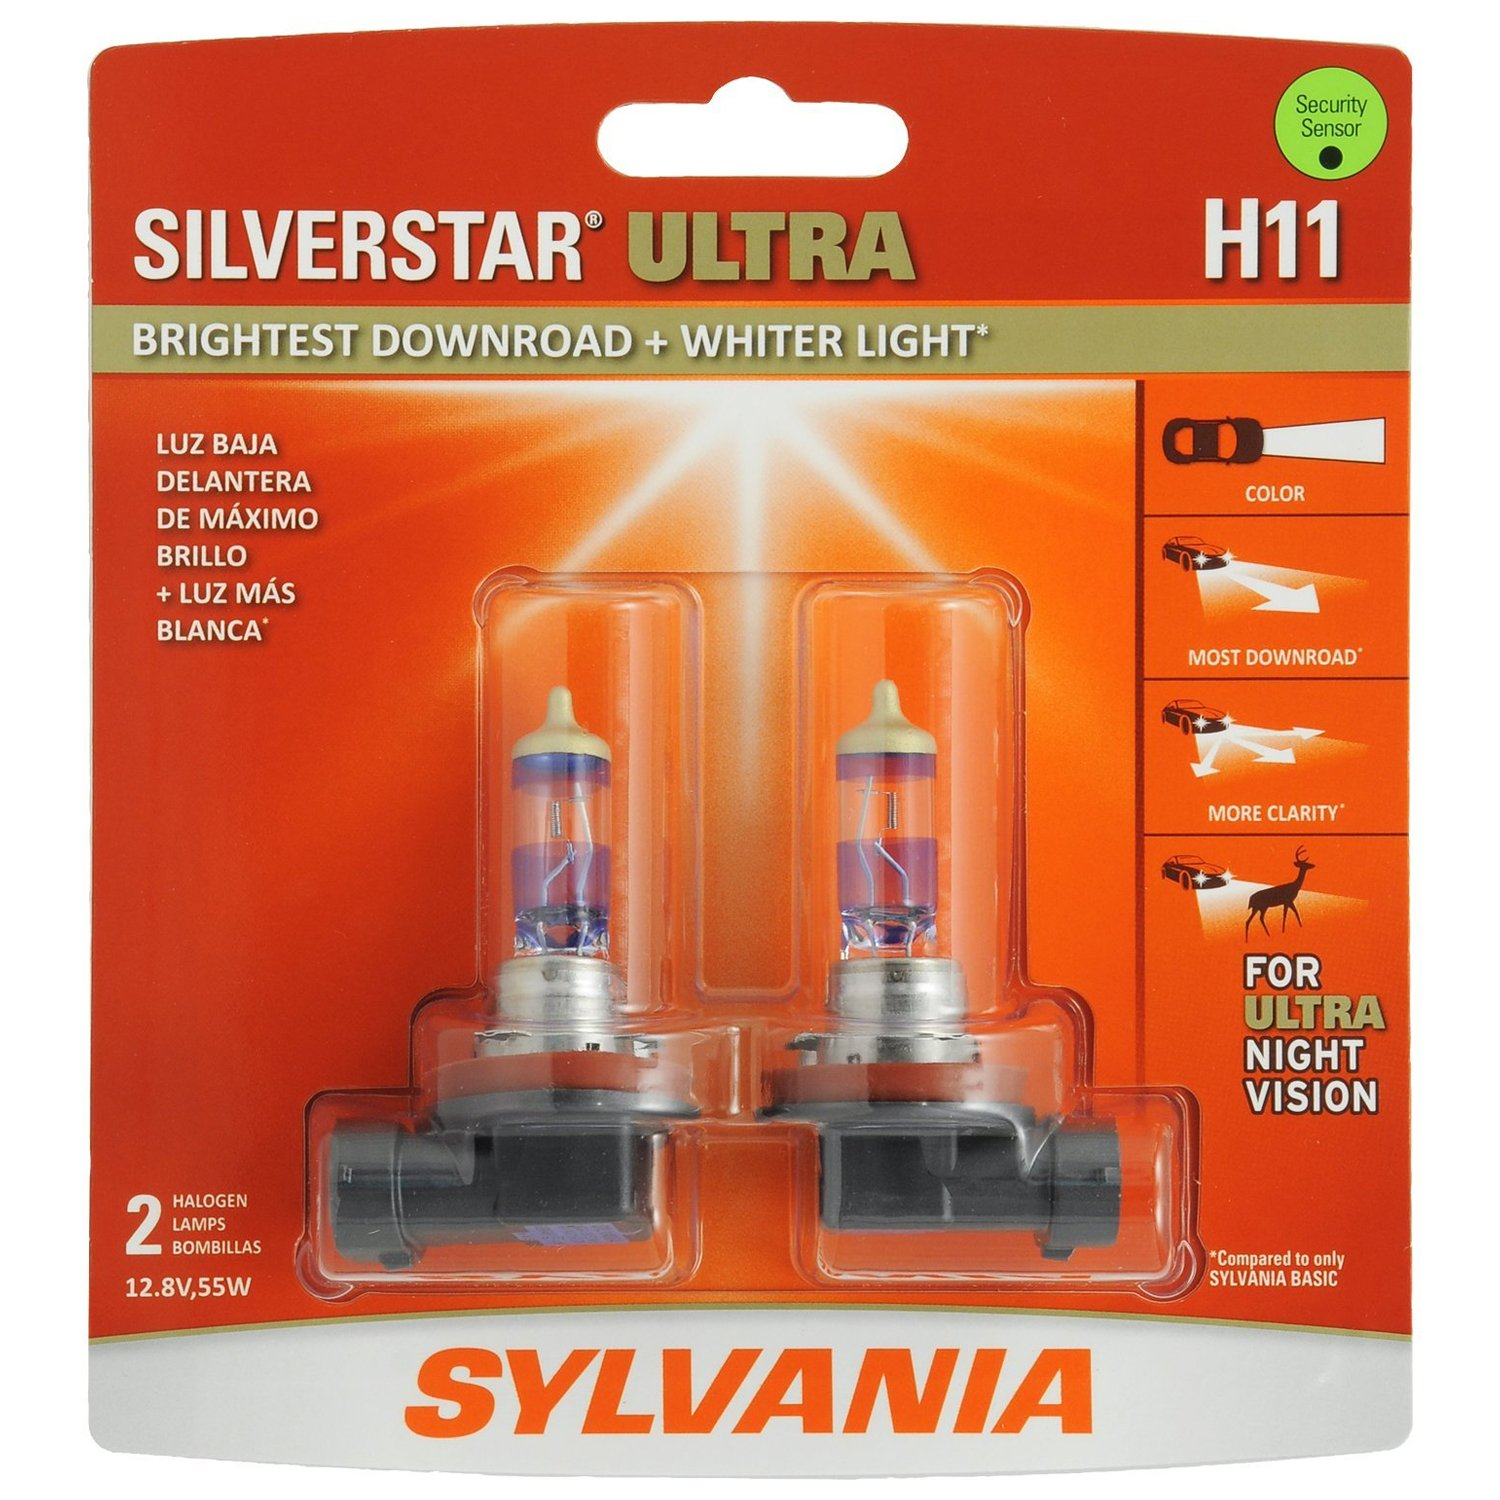 Contains 2 Bulbs High Beam SYLVANIA Low Beam and Fog Replacement Bulb Tri-Band Technology 9006 SilverStar Ultra Brightest Downroad with Whiter Light High Performance Halogen Headlight Bulb